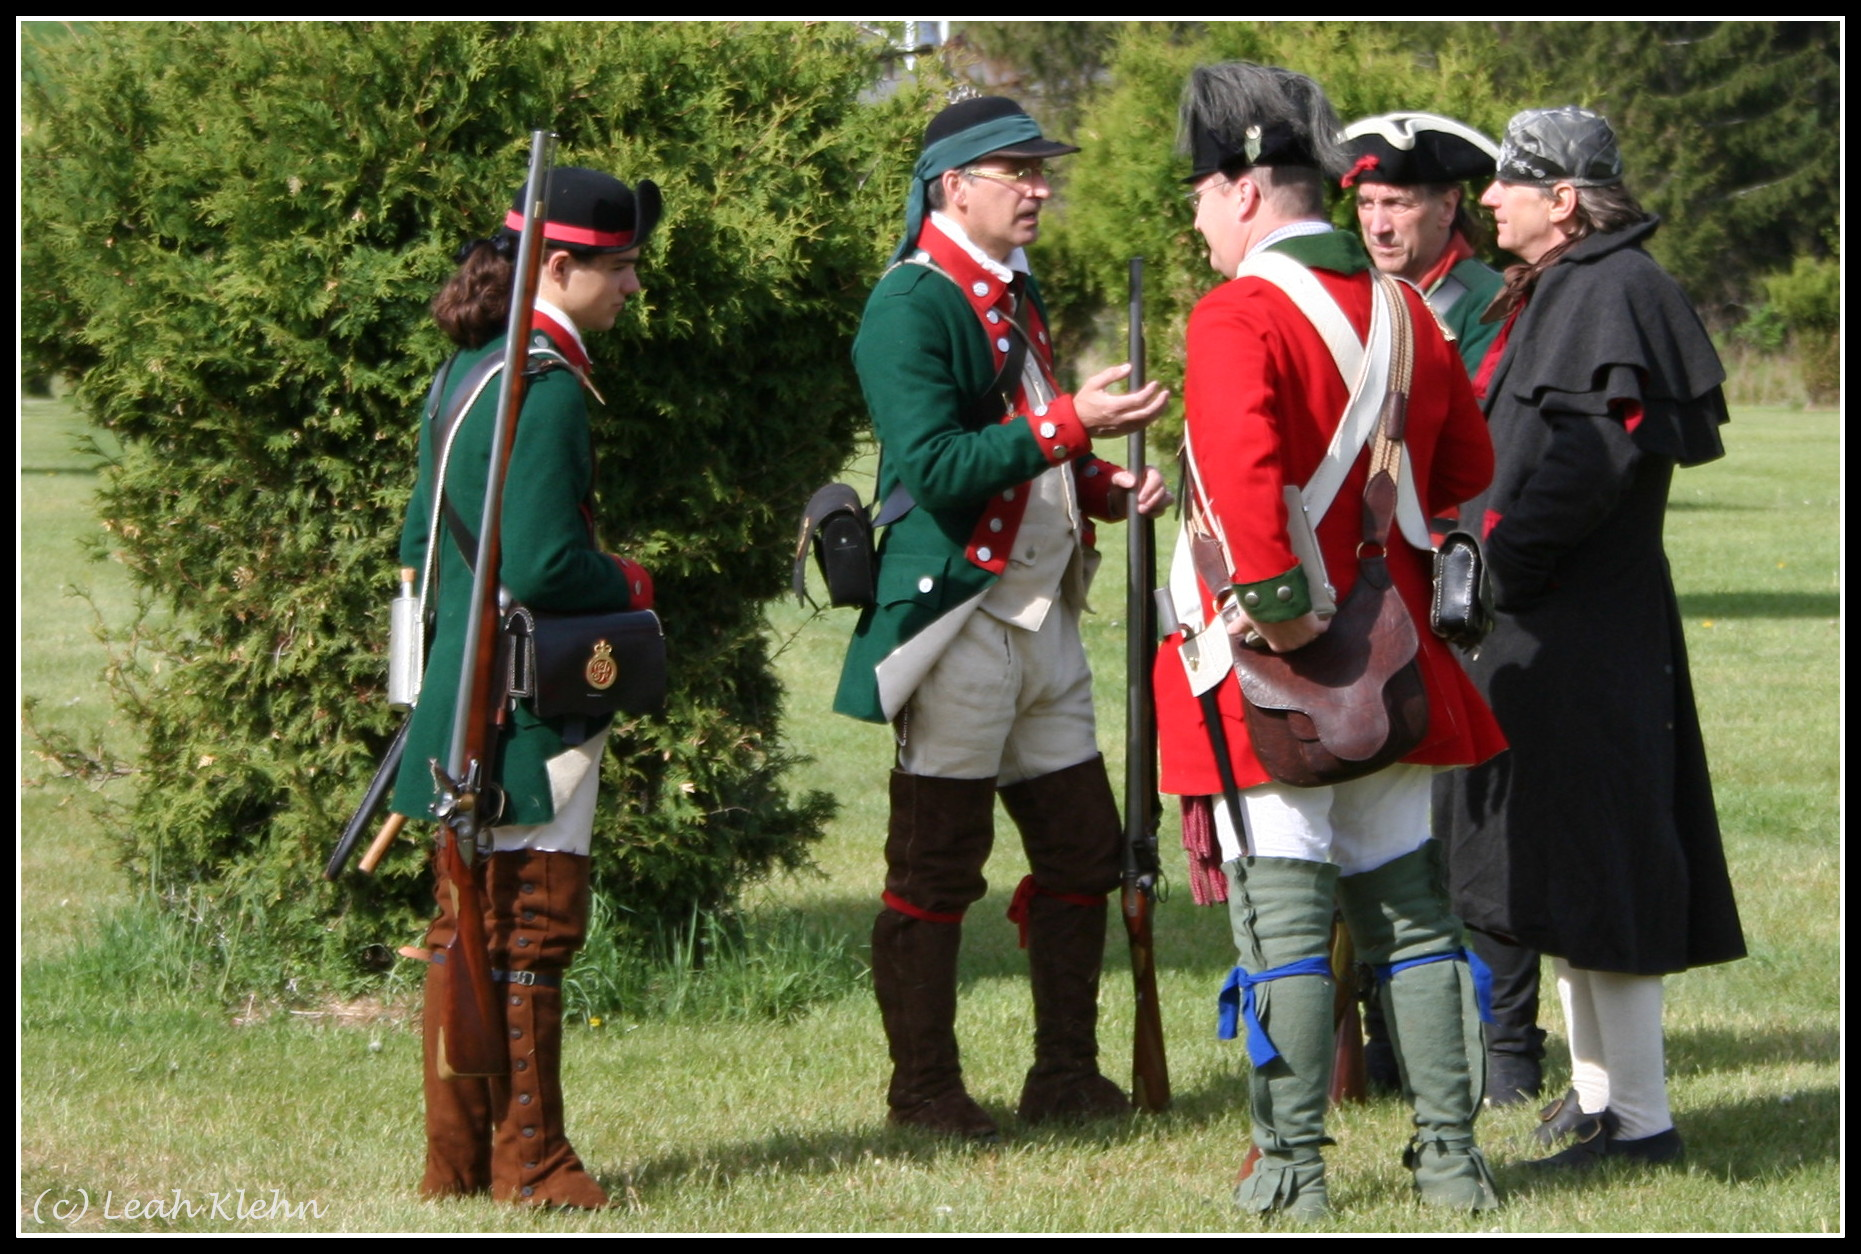 Revolutionary War Reenactment (6)